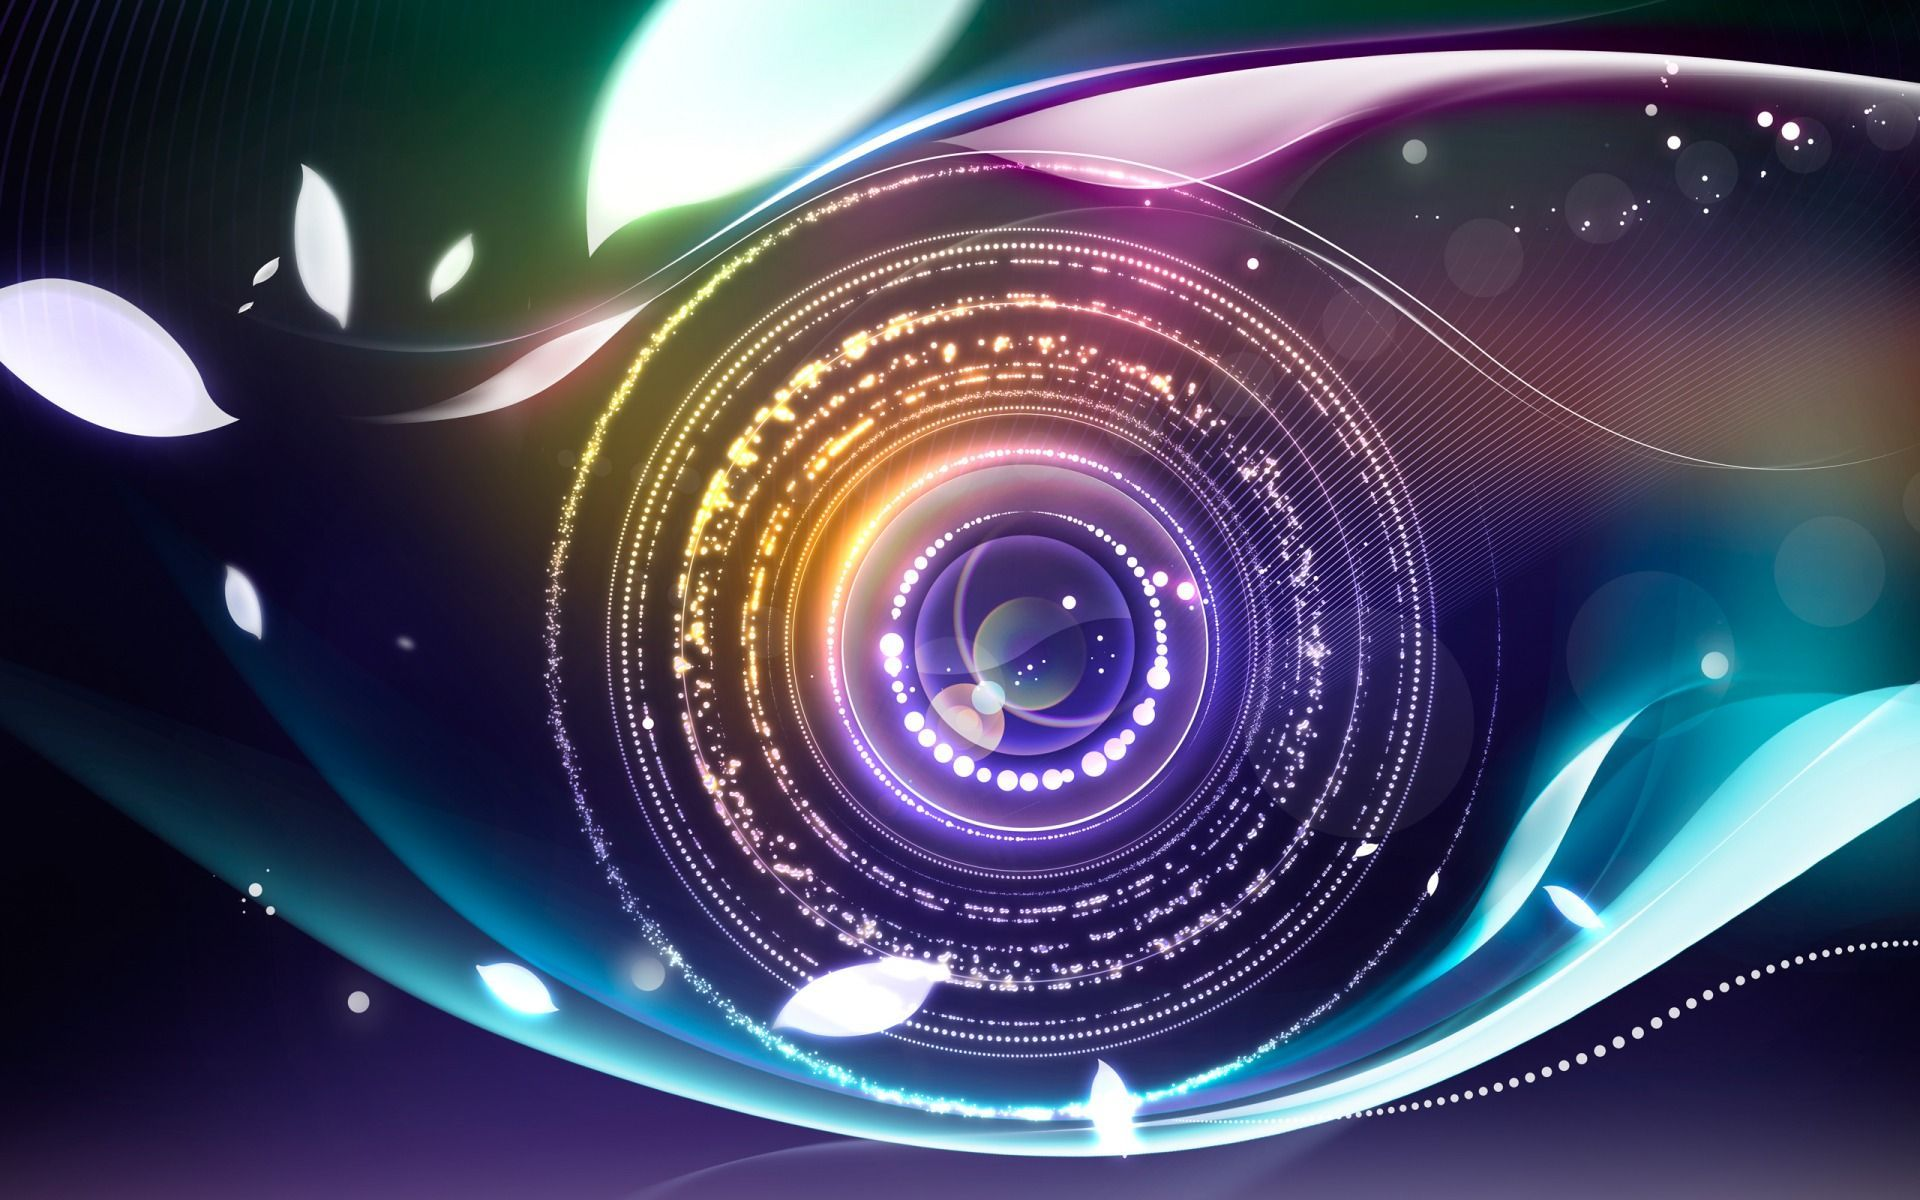 1920x1200 digital images | ... Wallpapers, Art, Images, digital abstract eye 2 ...